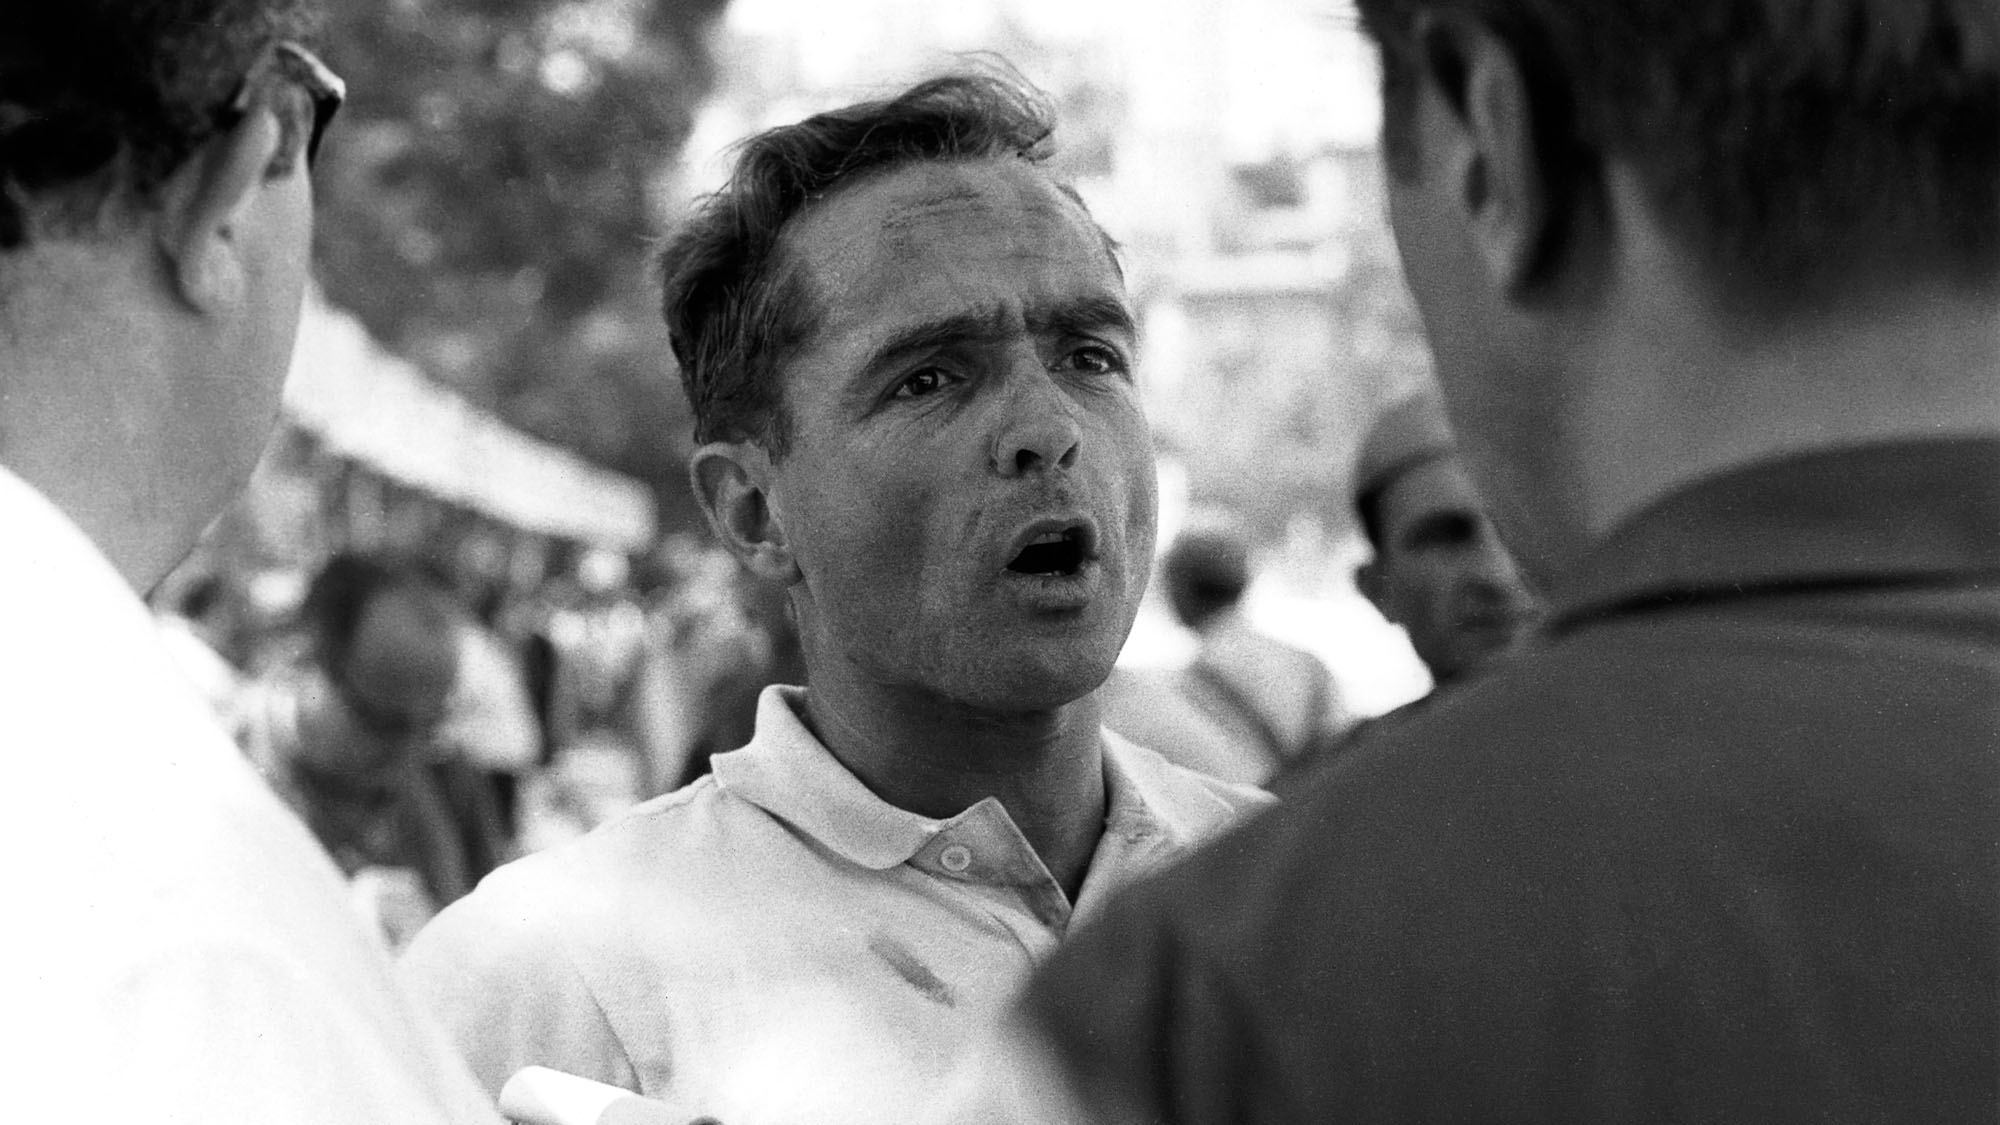 Phil Hill, Grand Prix of Italy, Autodromo Nazionale Monza, 10 September 1961. (Photo by Bernard Cahier/Getty Images)